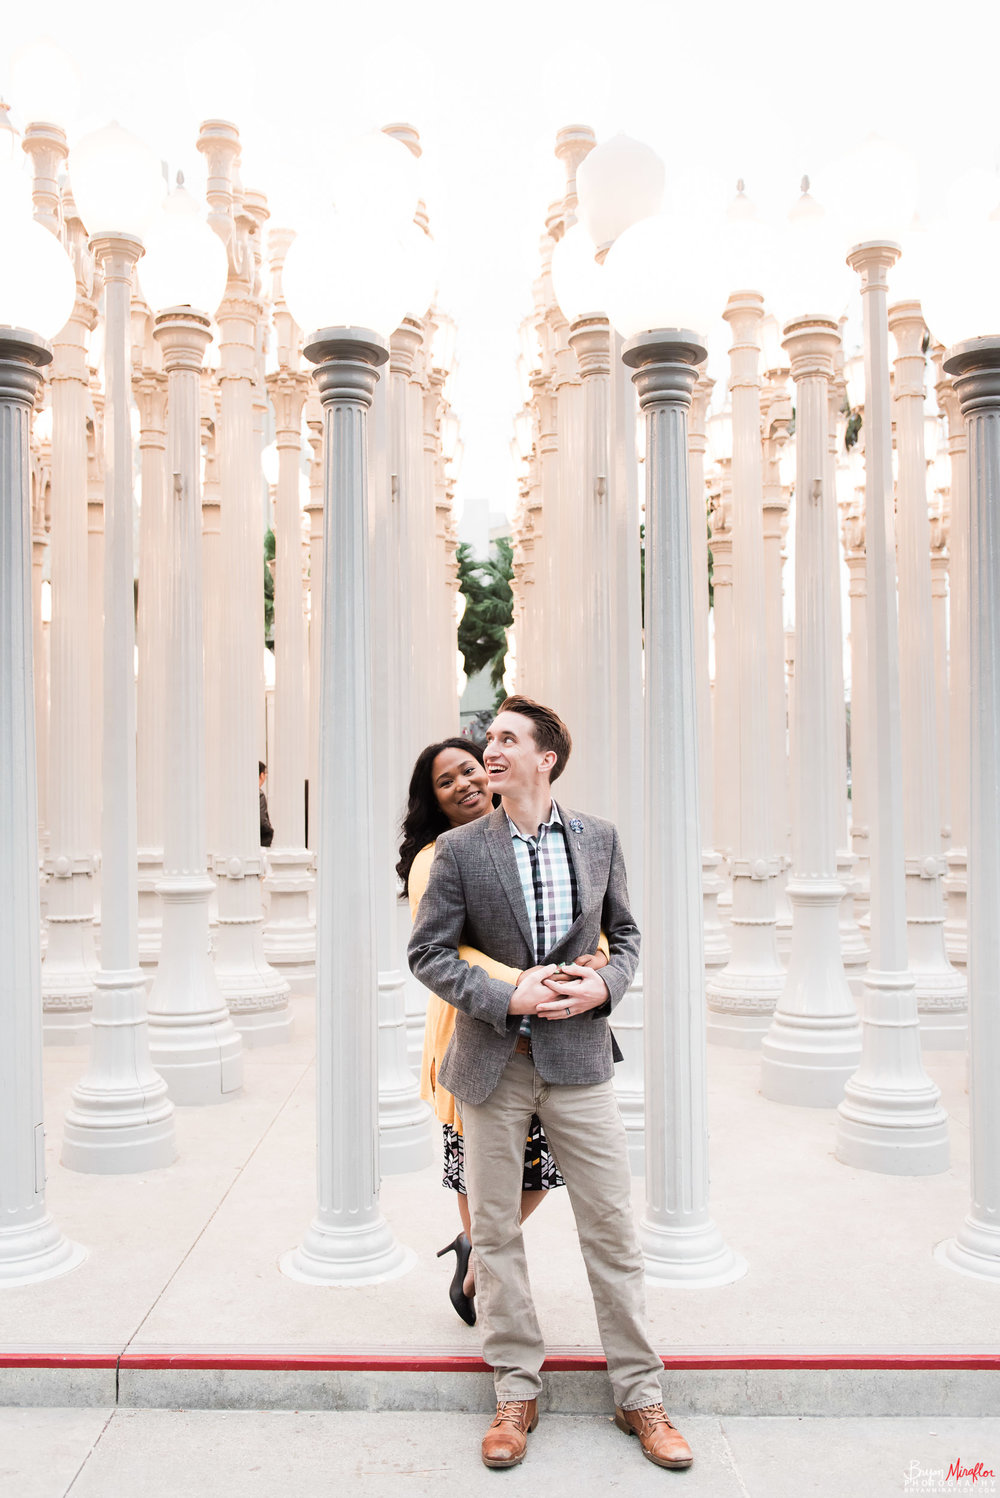 Bryan-Miraflor-Photography-Vanessa-Tommy-LACMA-DTLA-Engagement-Photoshoot-20161210-192.jpg